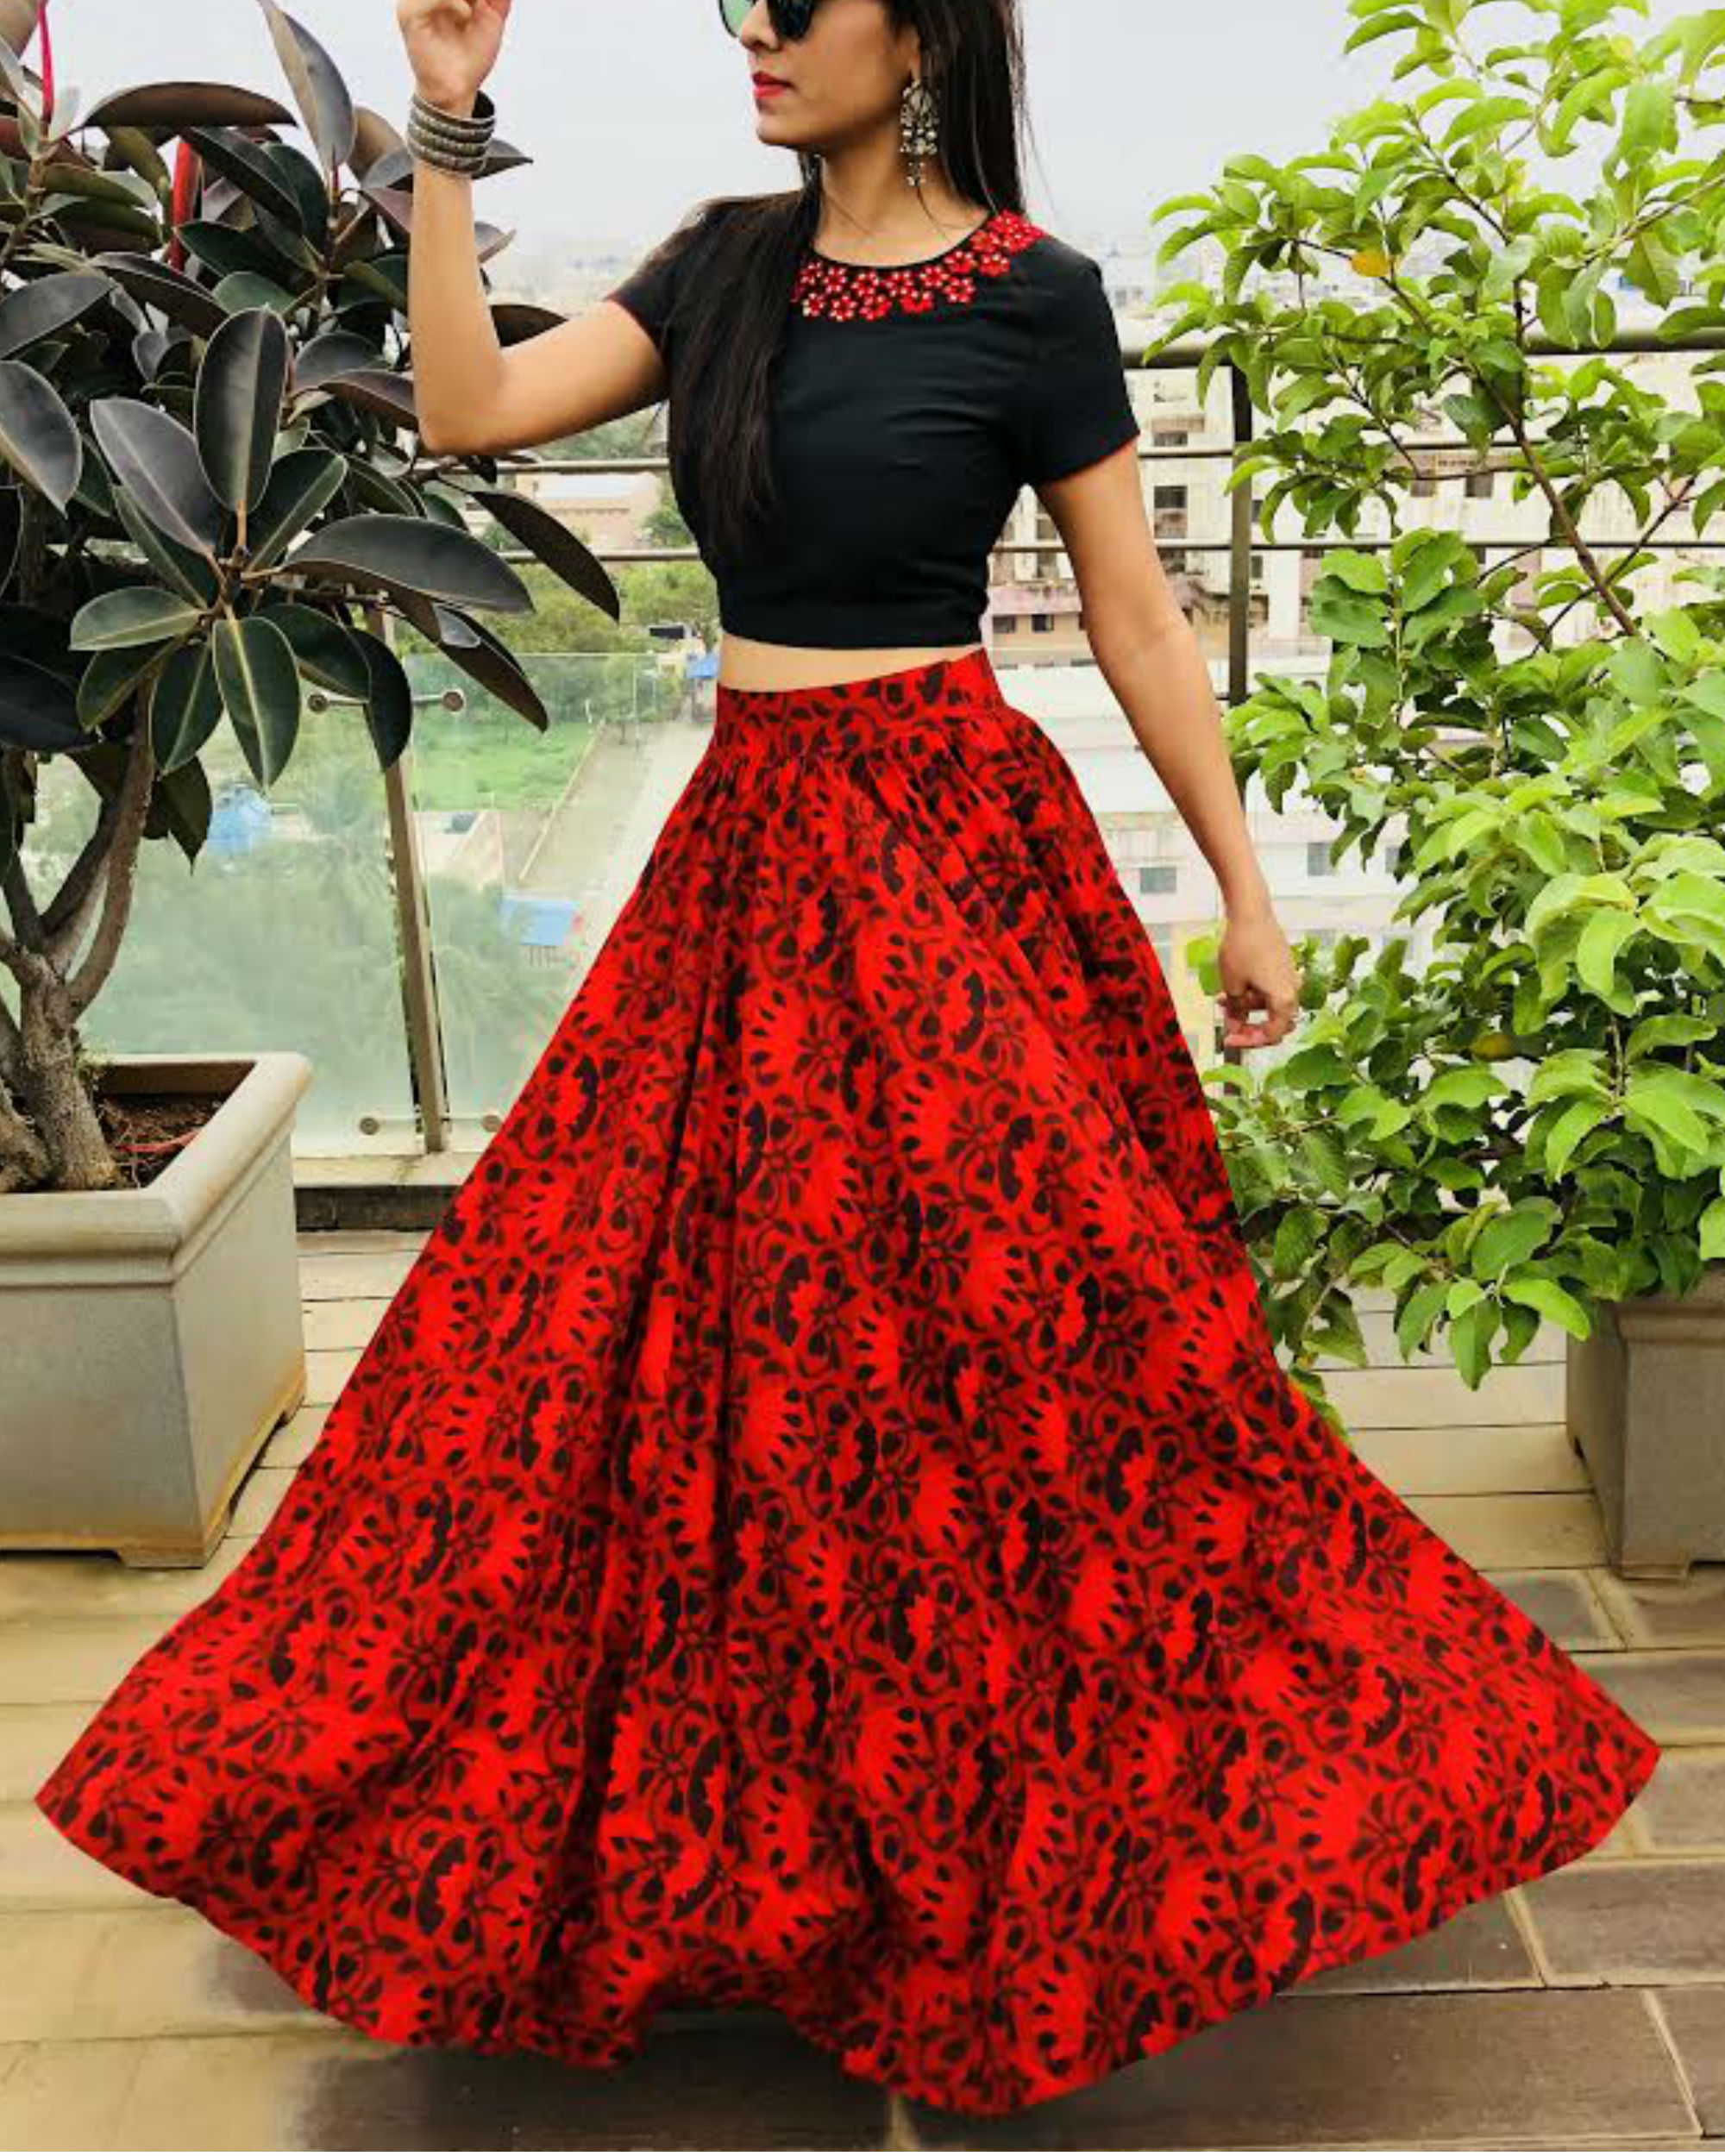 b38407c6b5 Red and black crop top and skirt set by Threeness | The Secret Label